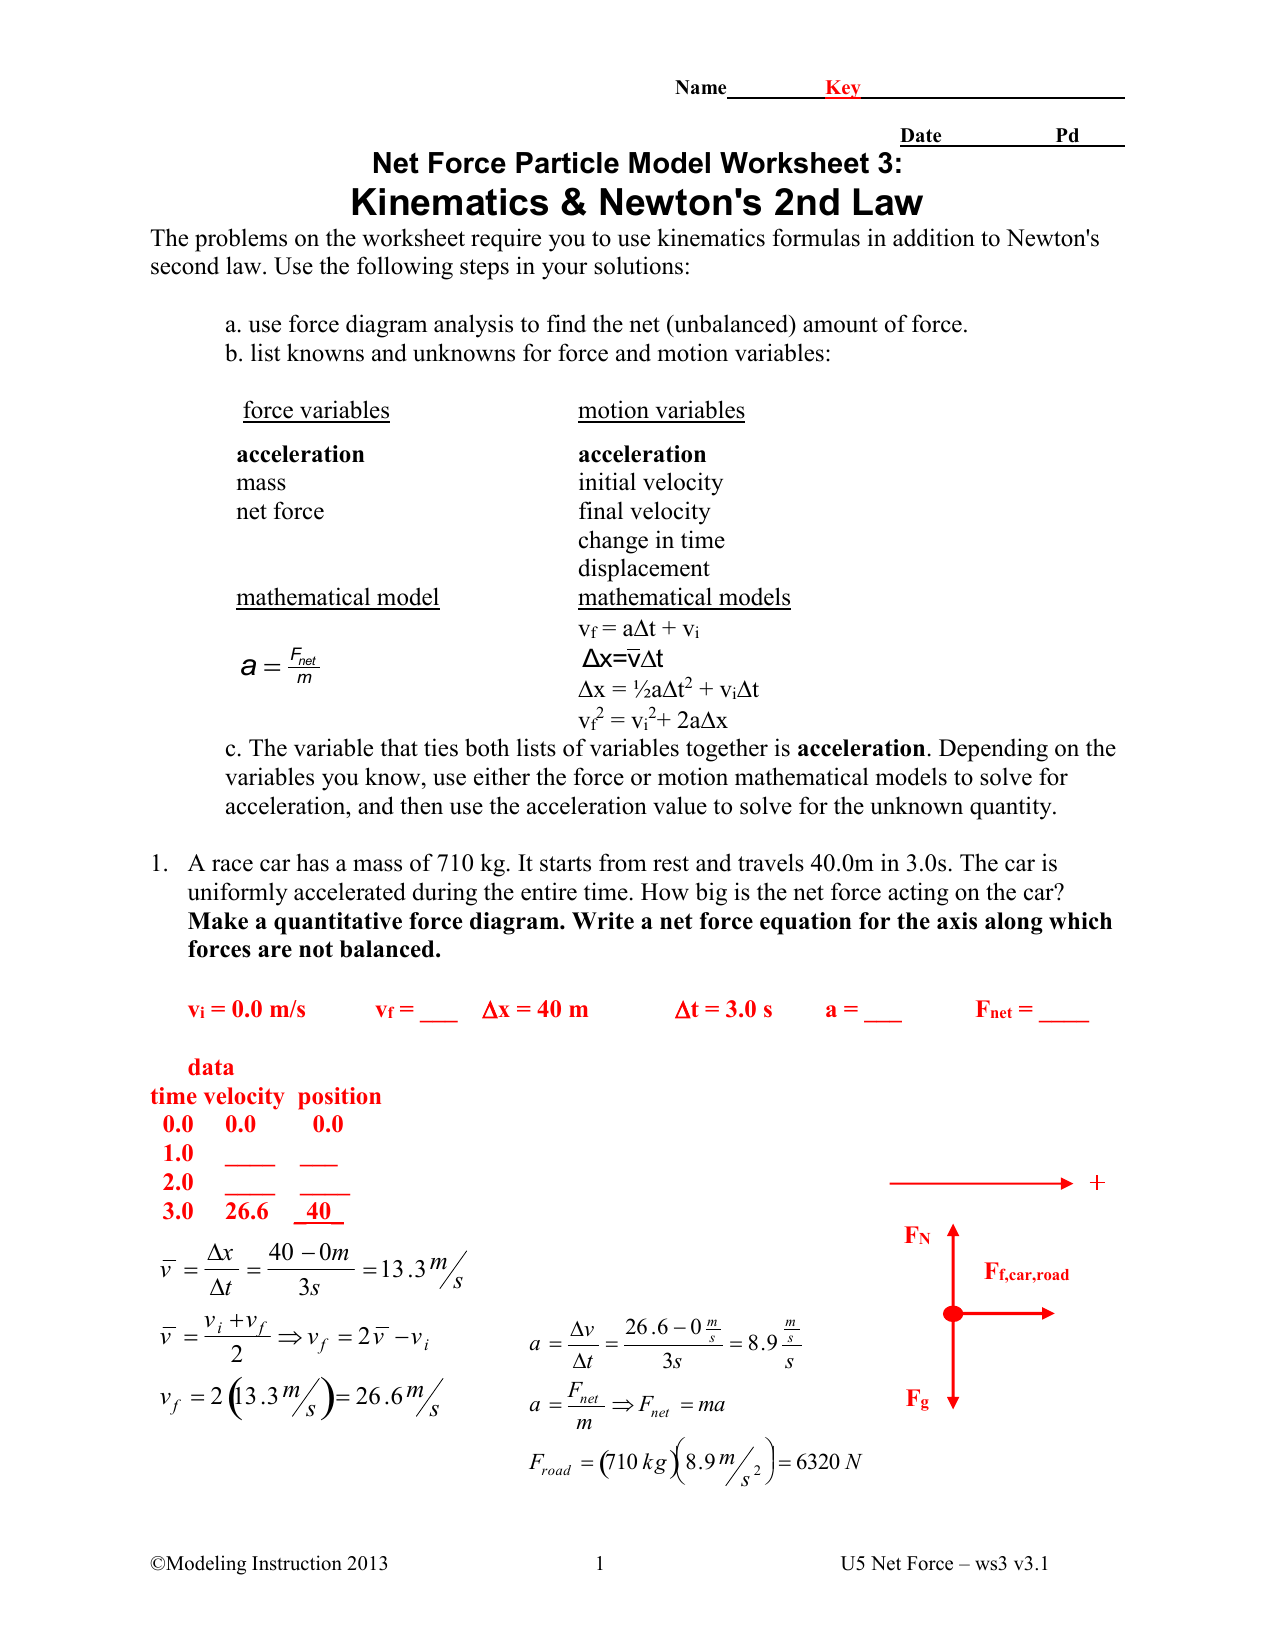 Net Force Particle Model Worksheet 5 Newton S Second Law